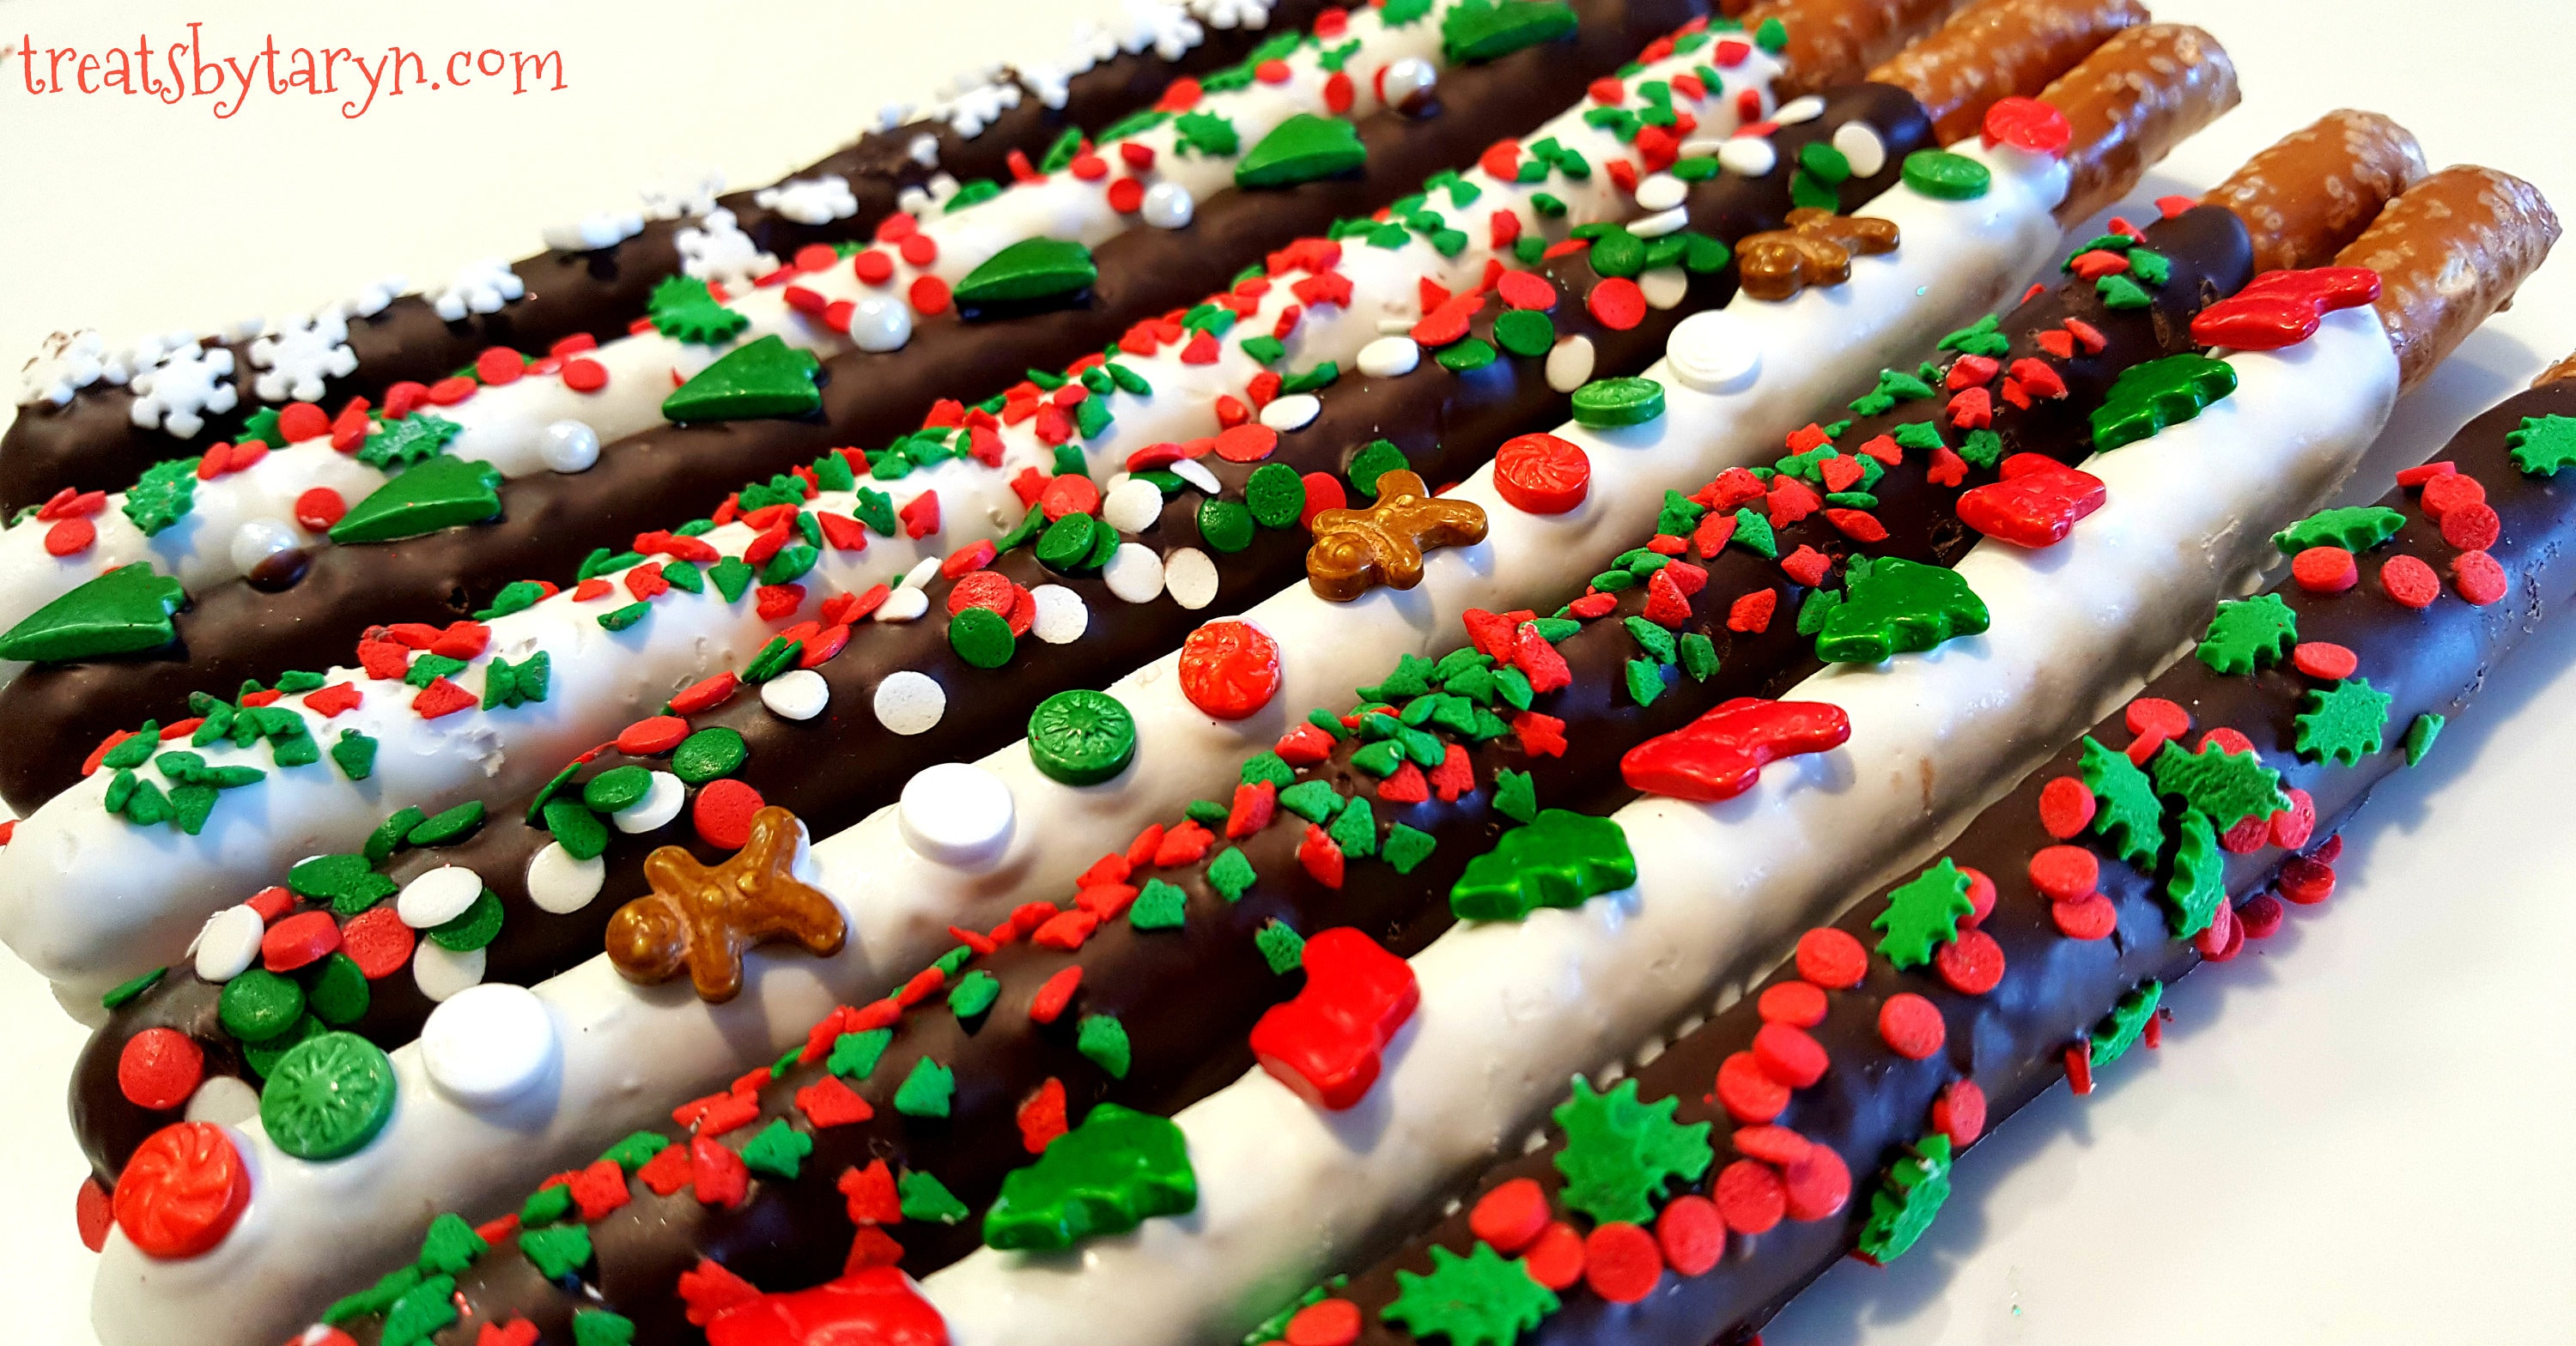 zoom - Christmas Chocolate Covered Pretzels